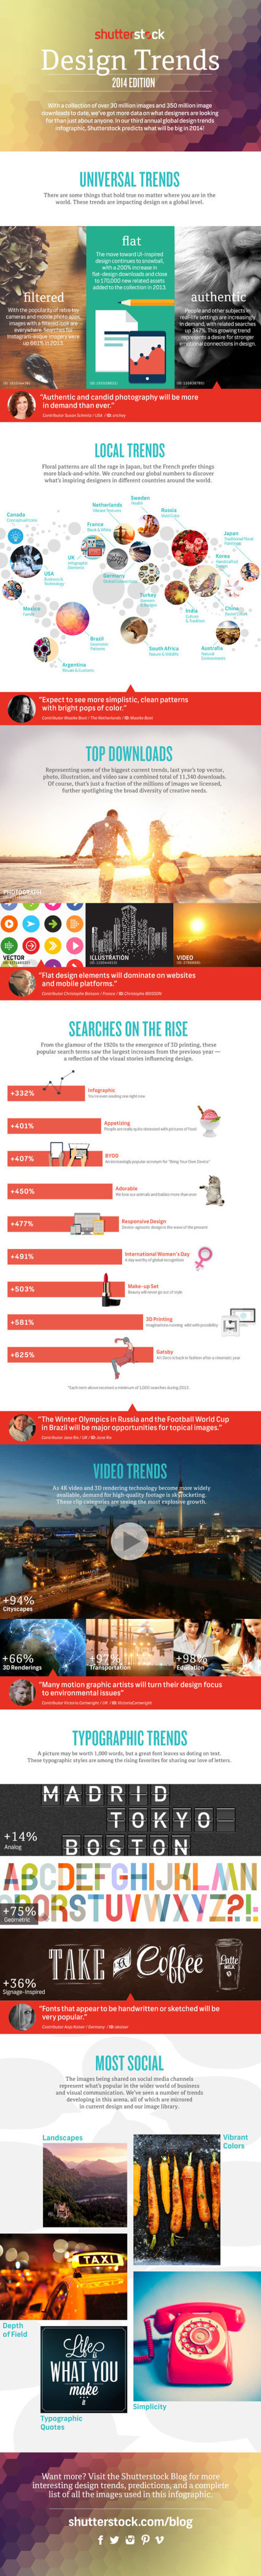 Shutterstock's Global Design Trends 2014 - Blog About Infographics ... | digital marketing strategy | Scoop.it